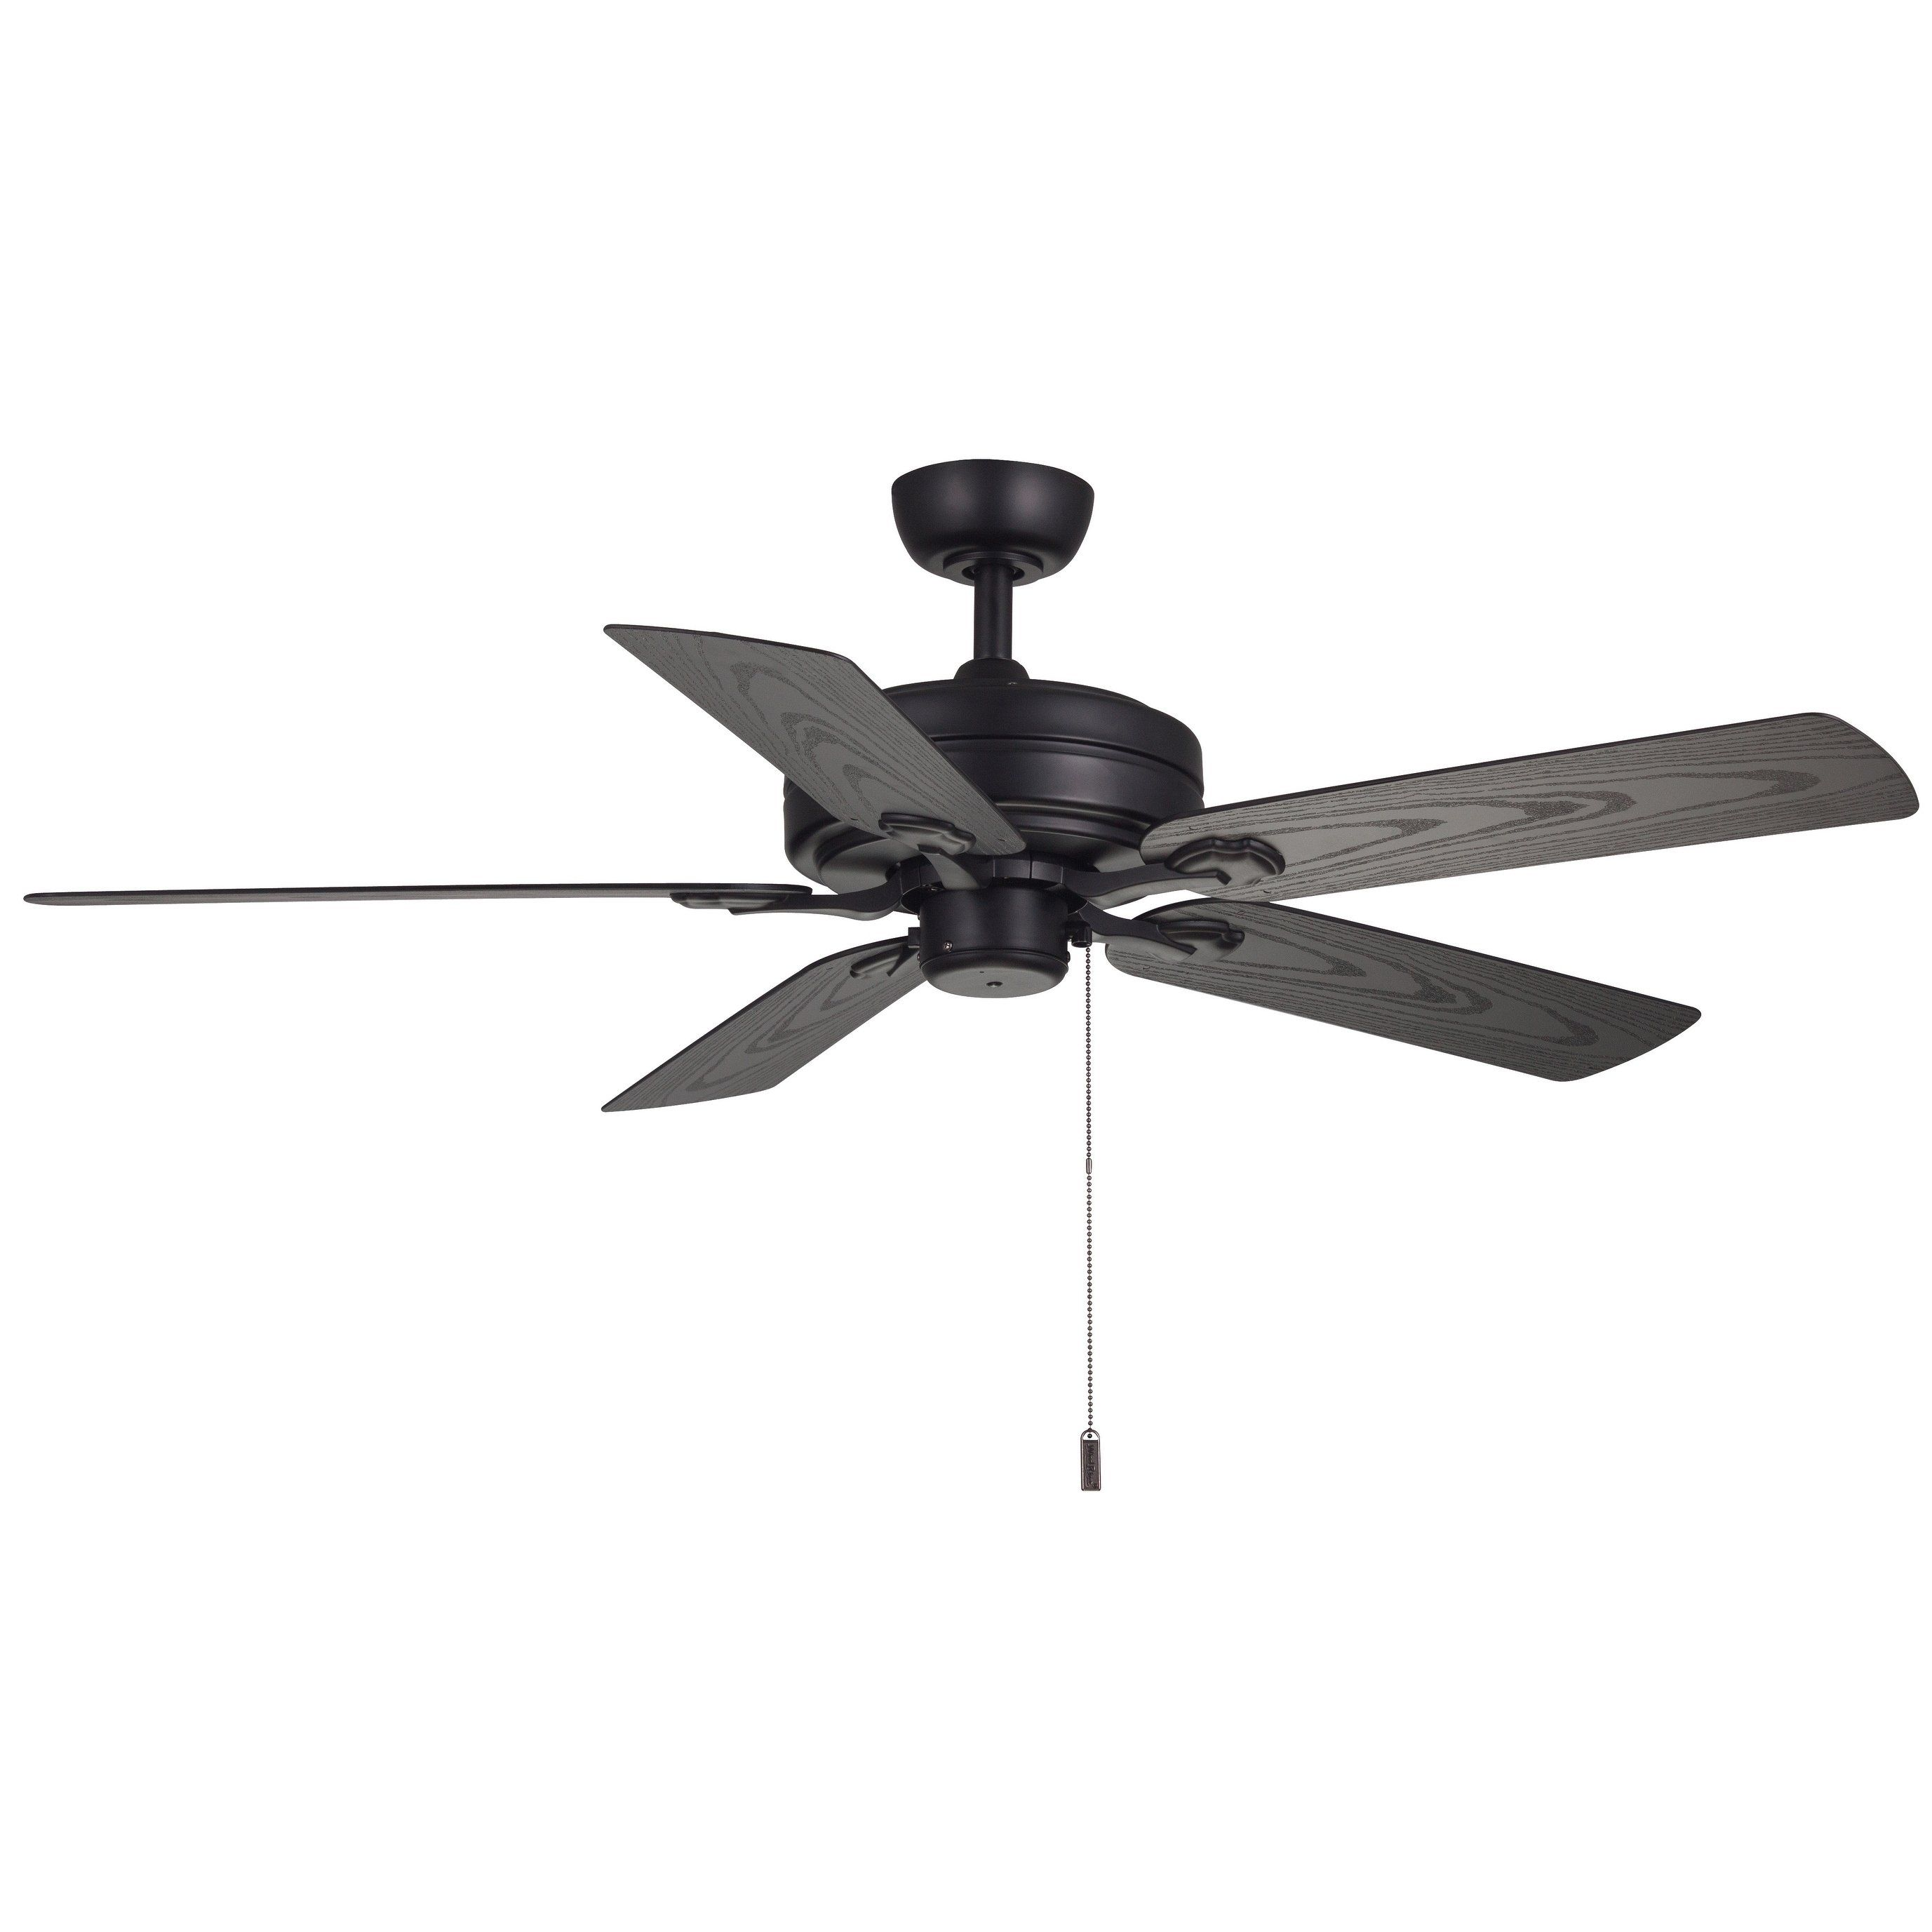 Courtyard 52 Outdoor Ceiling Fan Textured Textured Brown Wood Finish Blades Metal Outdoor Ceiling Fans Ceiling Fan Traditional Ceiling Fans